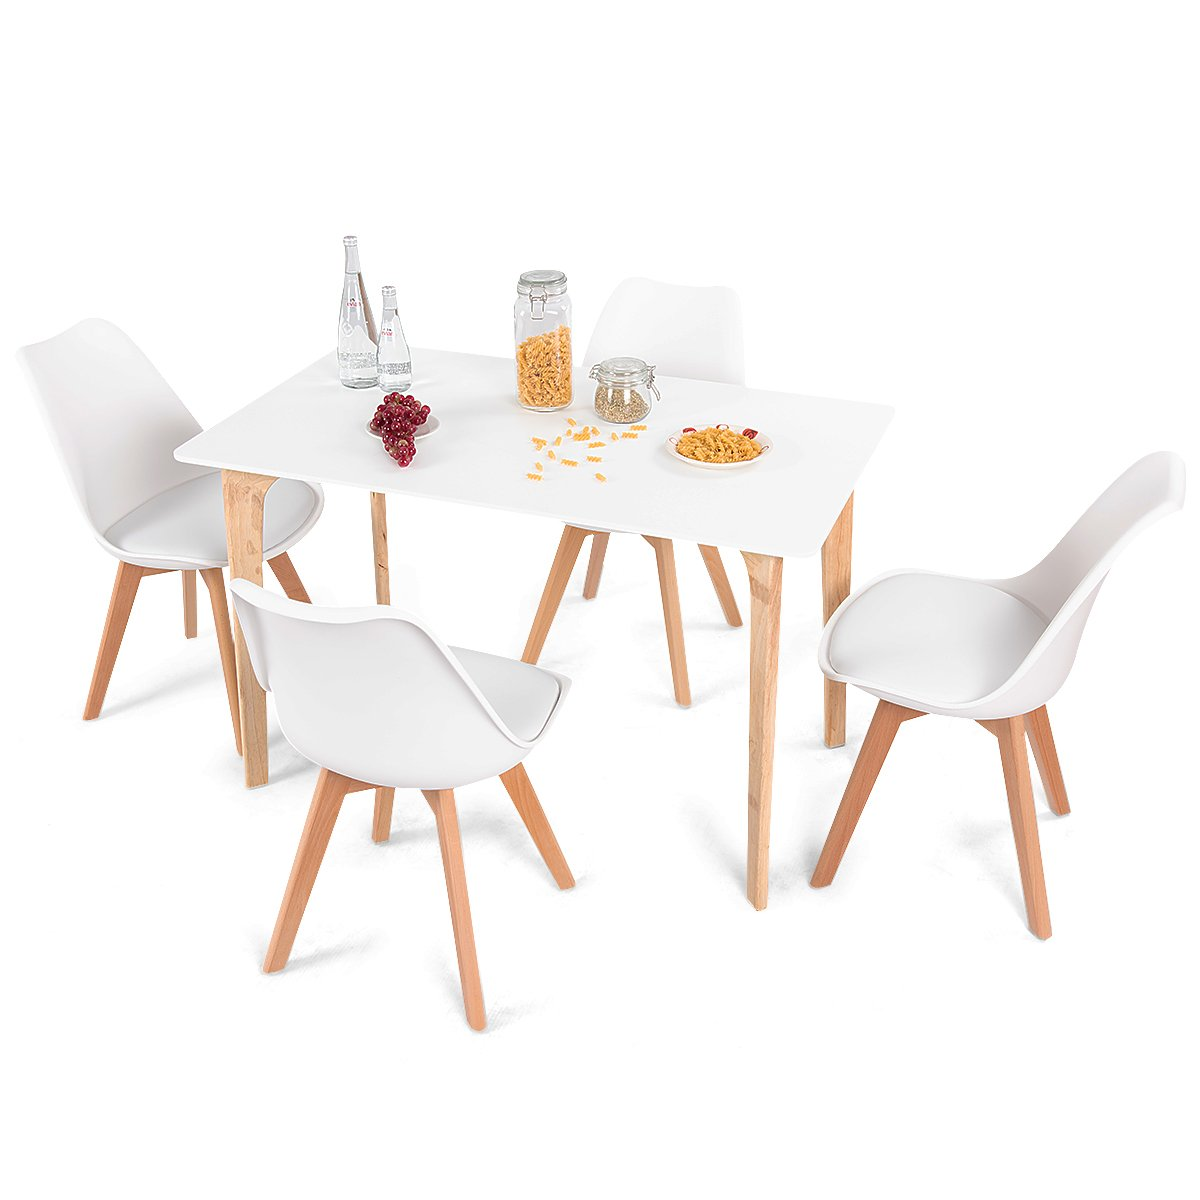 Giantex 5 Pieces Dining Table Set w/ 4 Chairs Home Dining Room Kitchen Waiting Room Modern Rectangular Table Mid-Century Dining Chairs with Padded Seat Wood Legs White